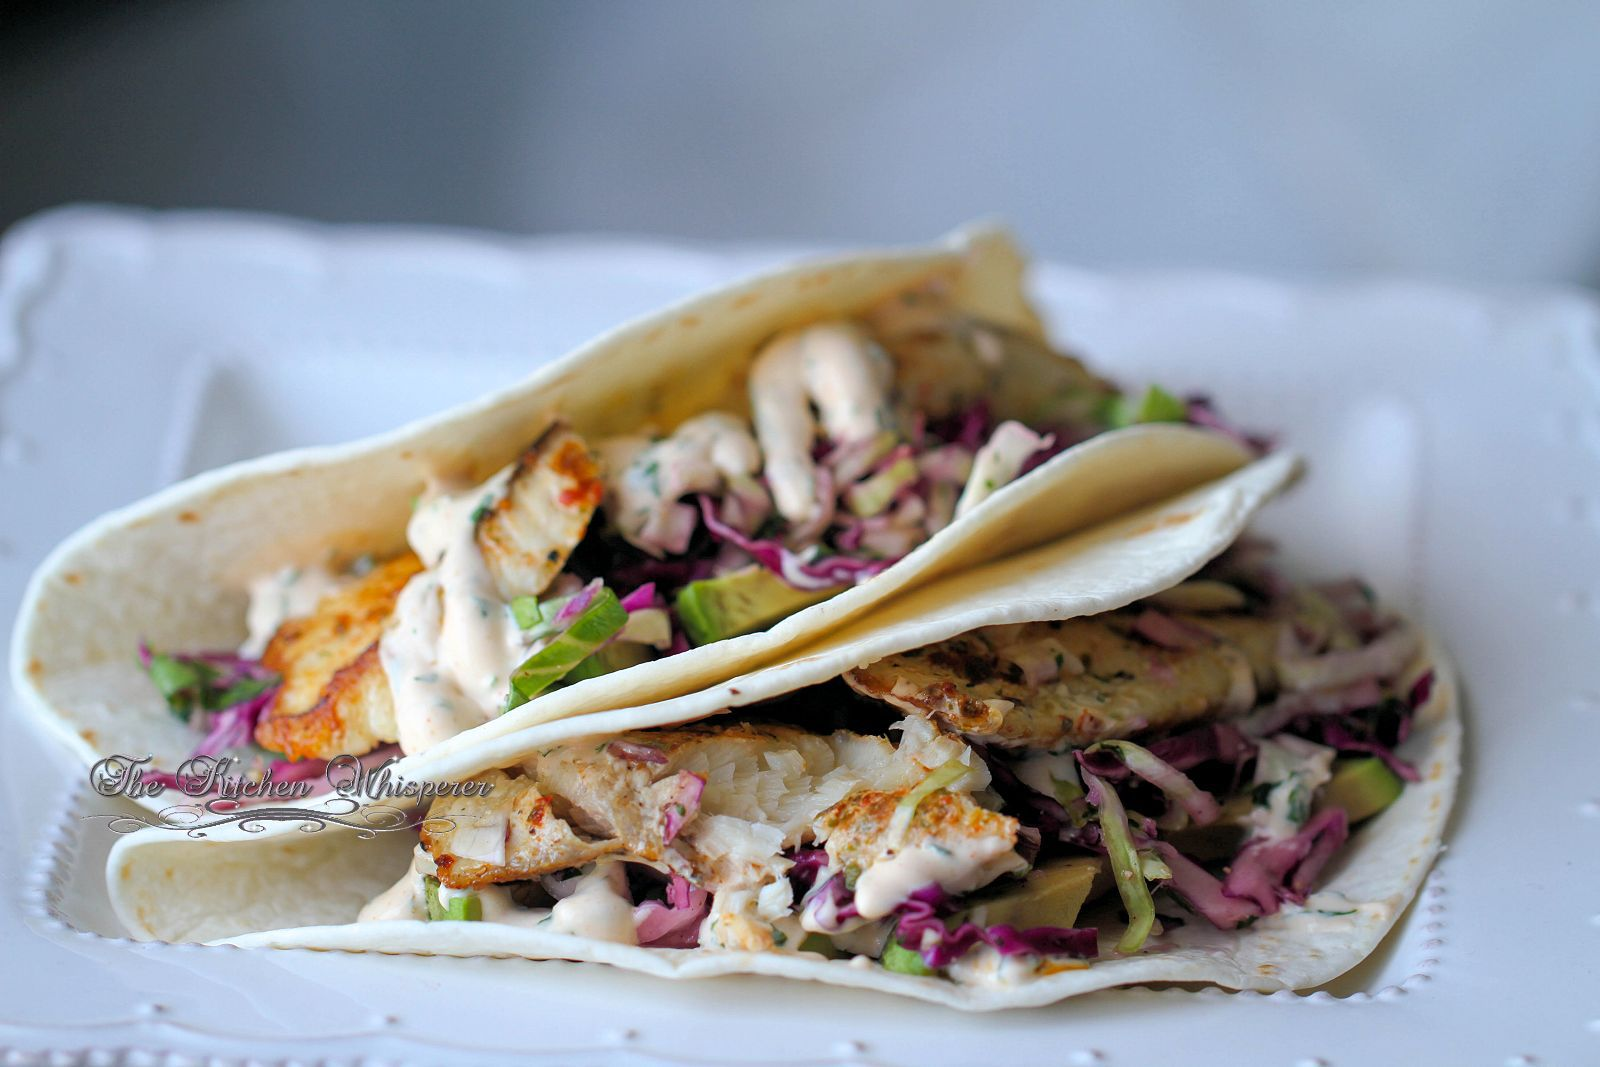 Baja Fish Tacos with Red Onion Relish Meal Kits Delivery